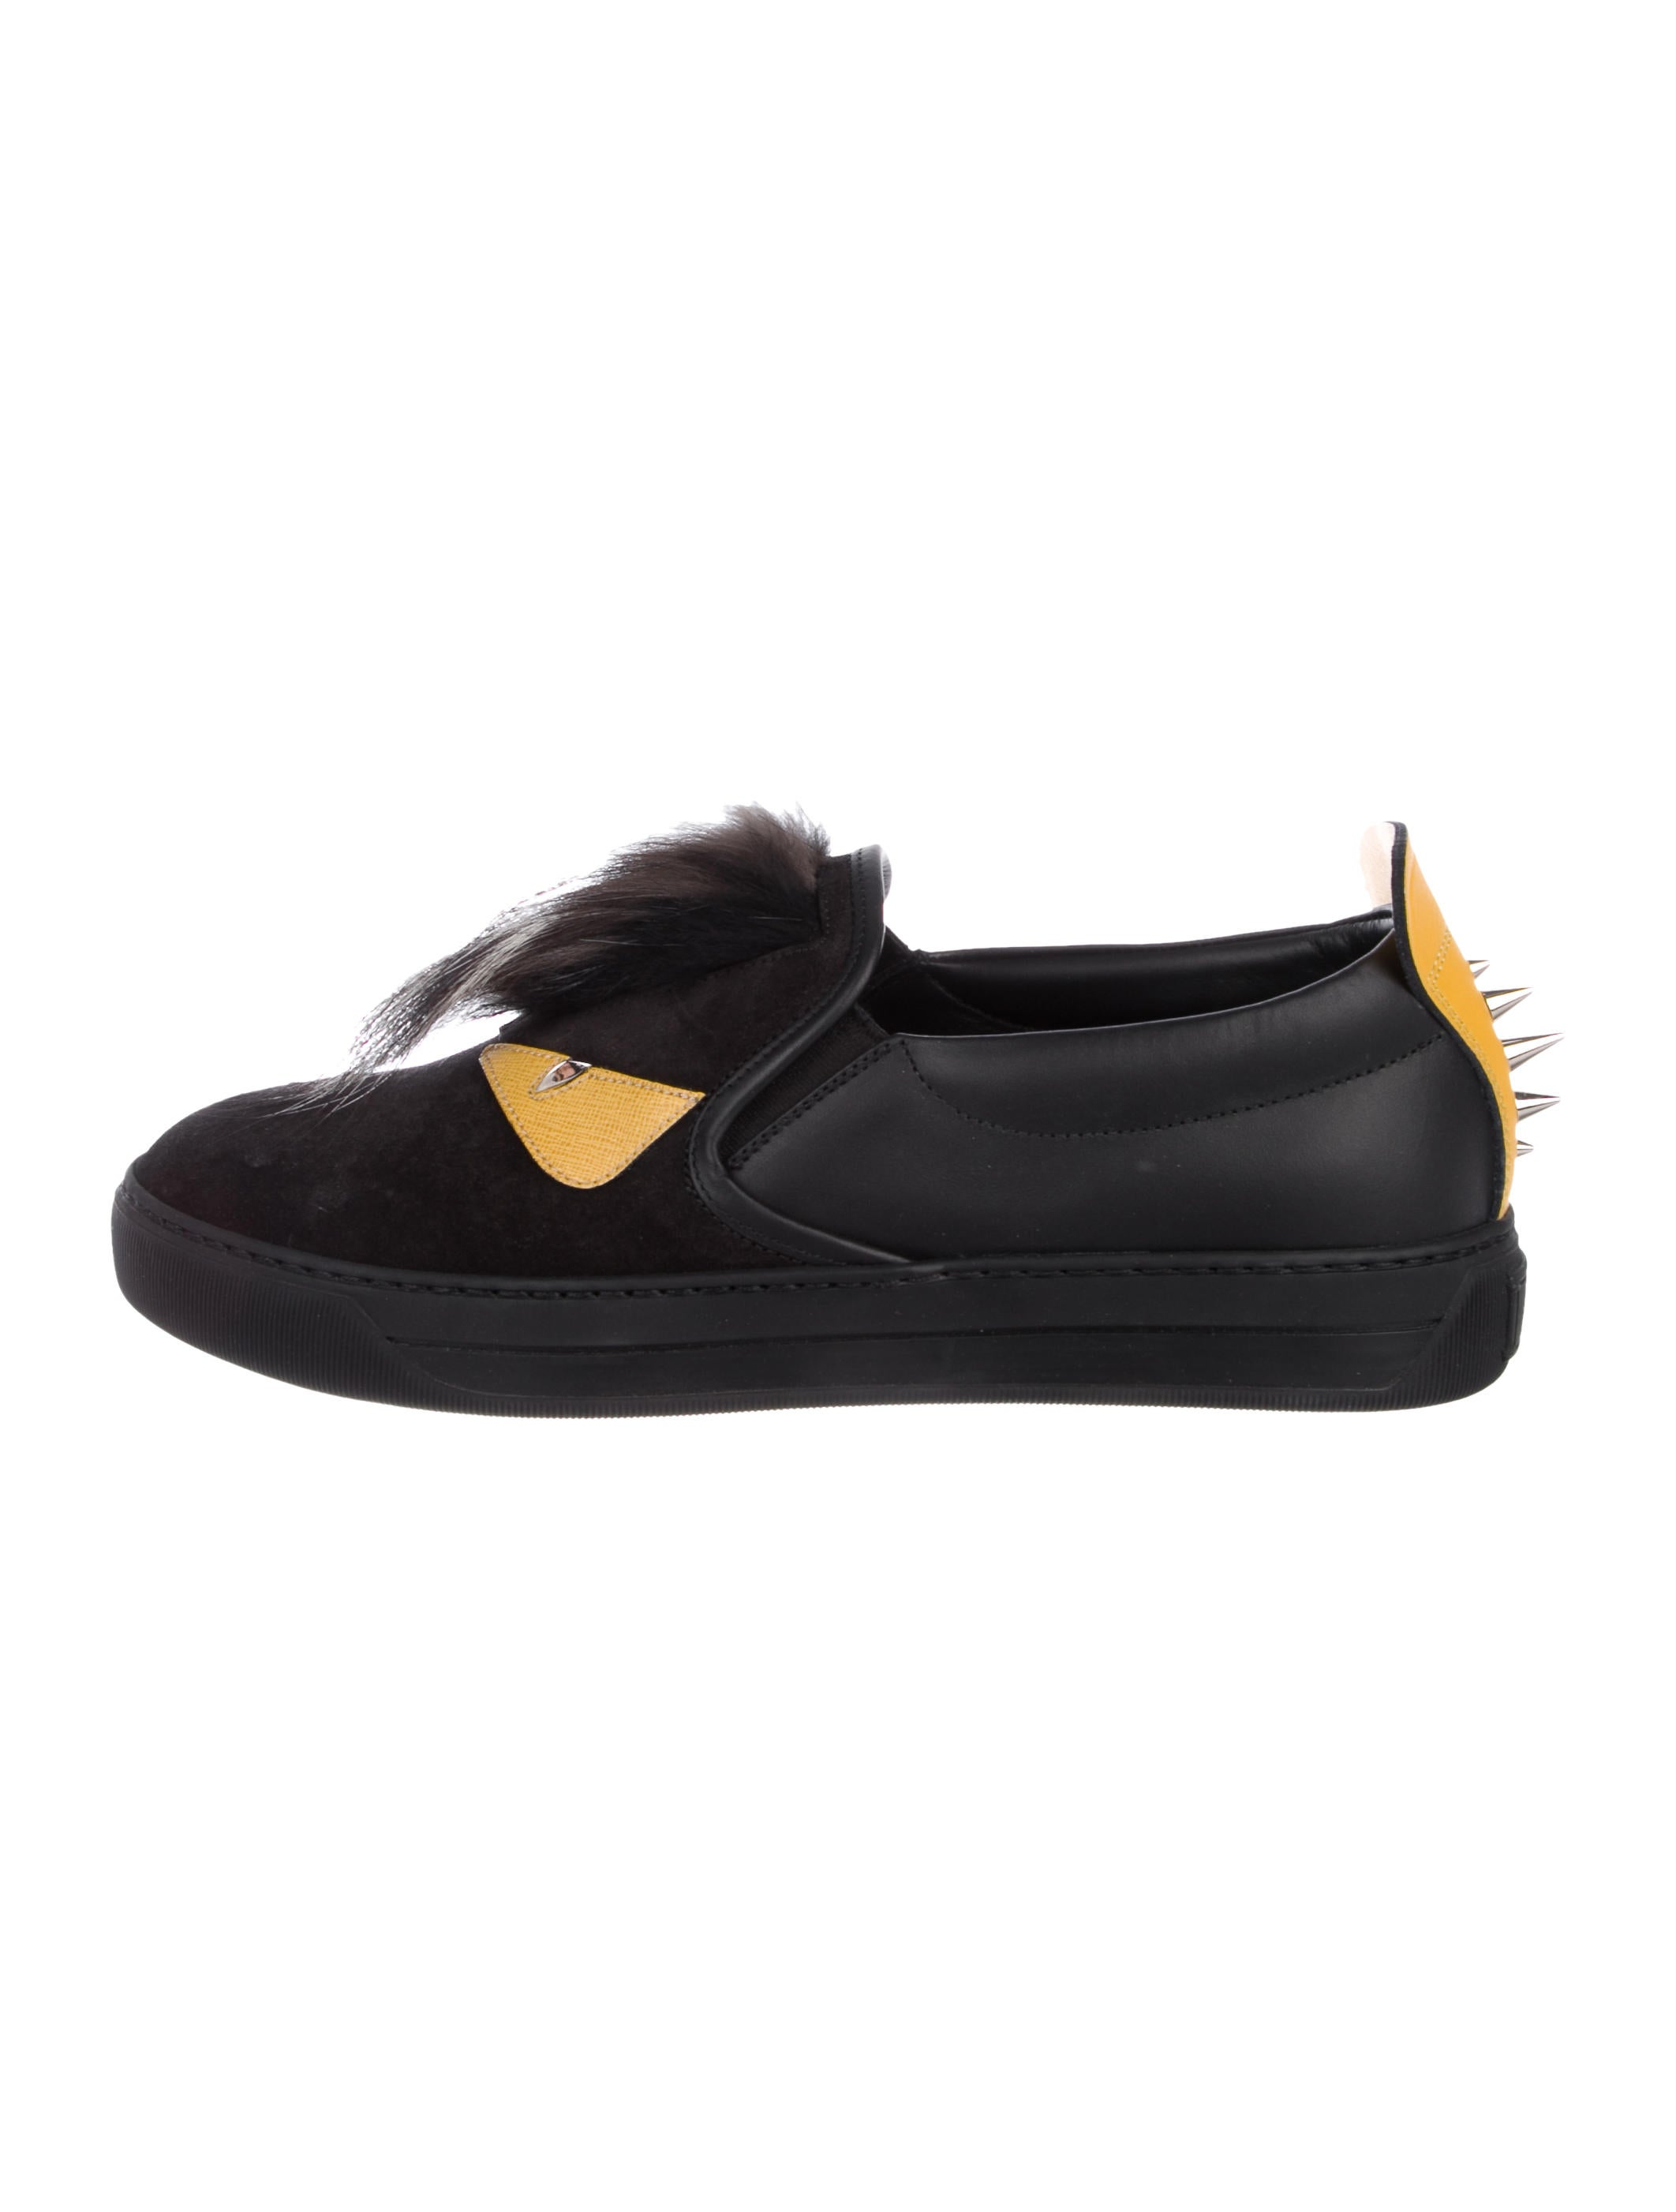 3cfbba4f8919 Fendi Fur-Trimmed Suede Monster Slip-On Sneakers w  Tags - Shoes ...